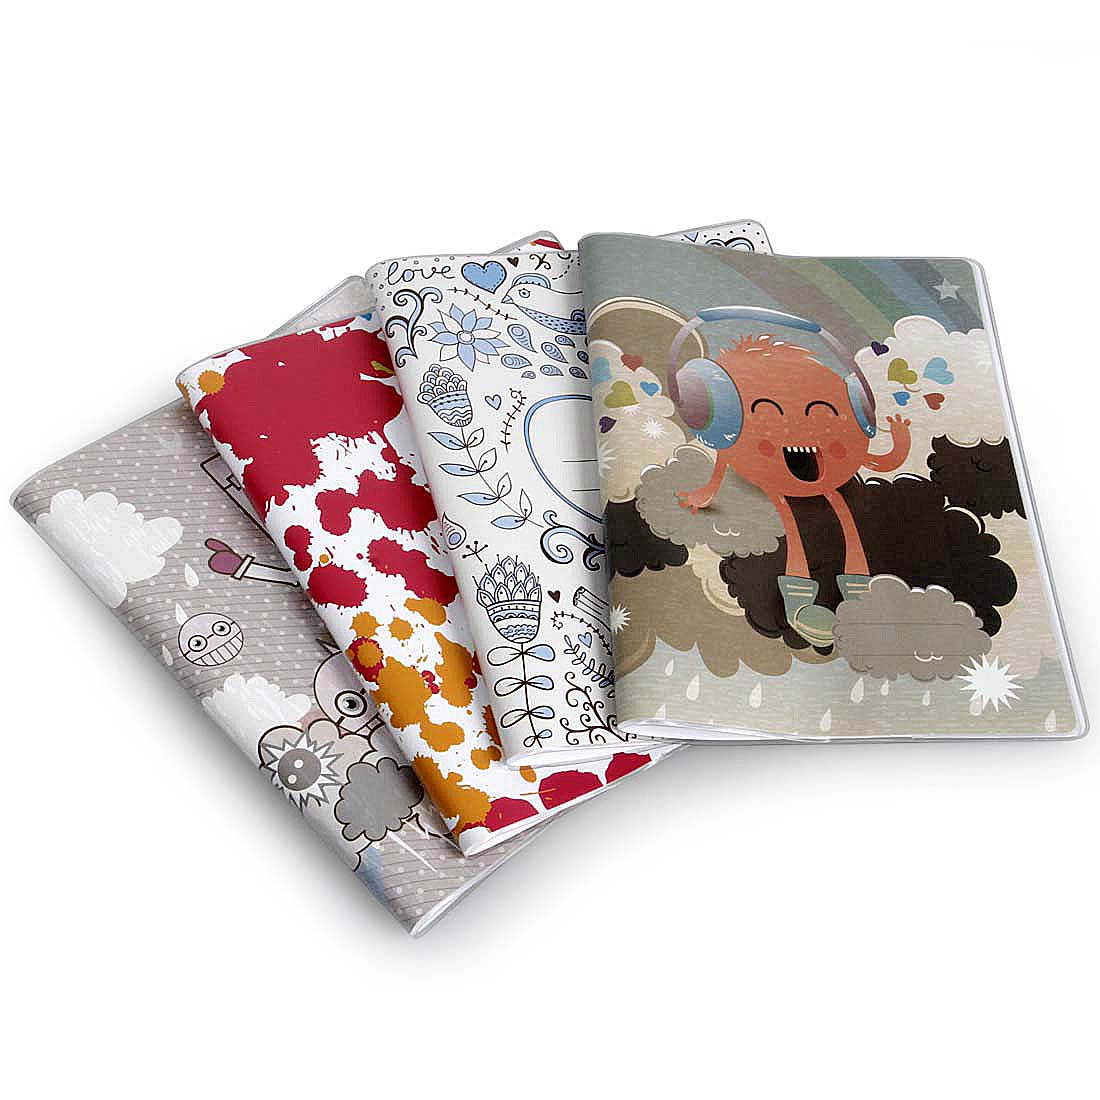 Bundle Monster 4pc Mixed Design Plastic Sleeve Composition Book Covers Set